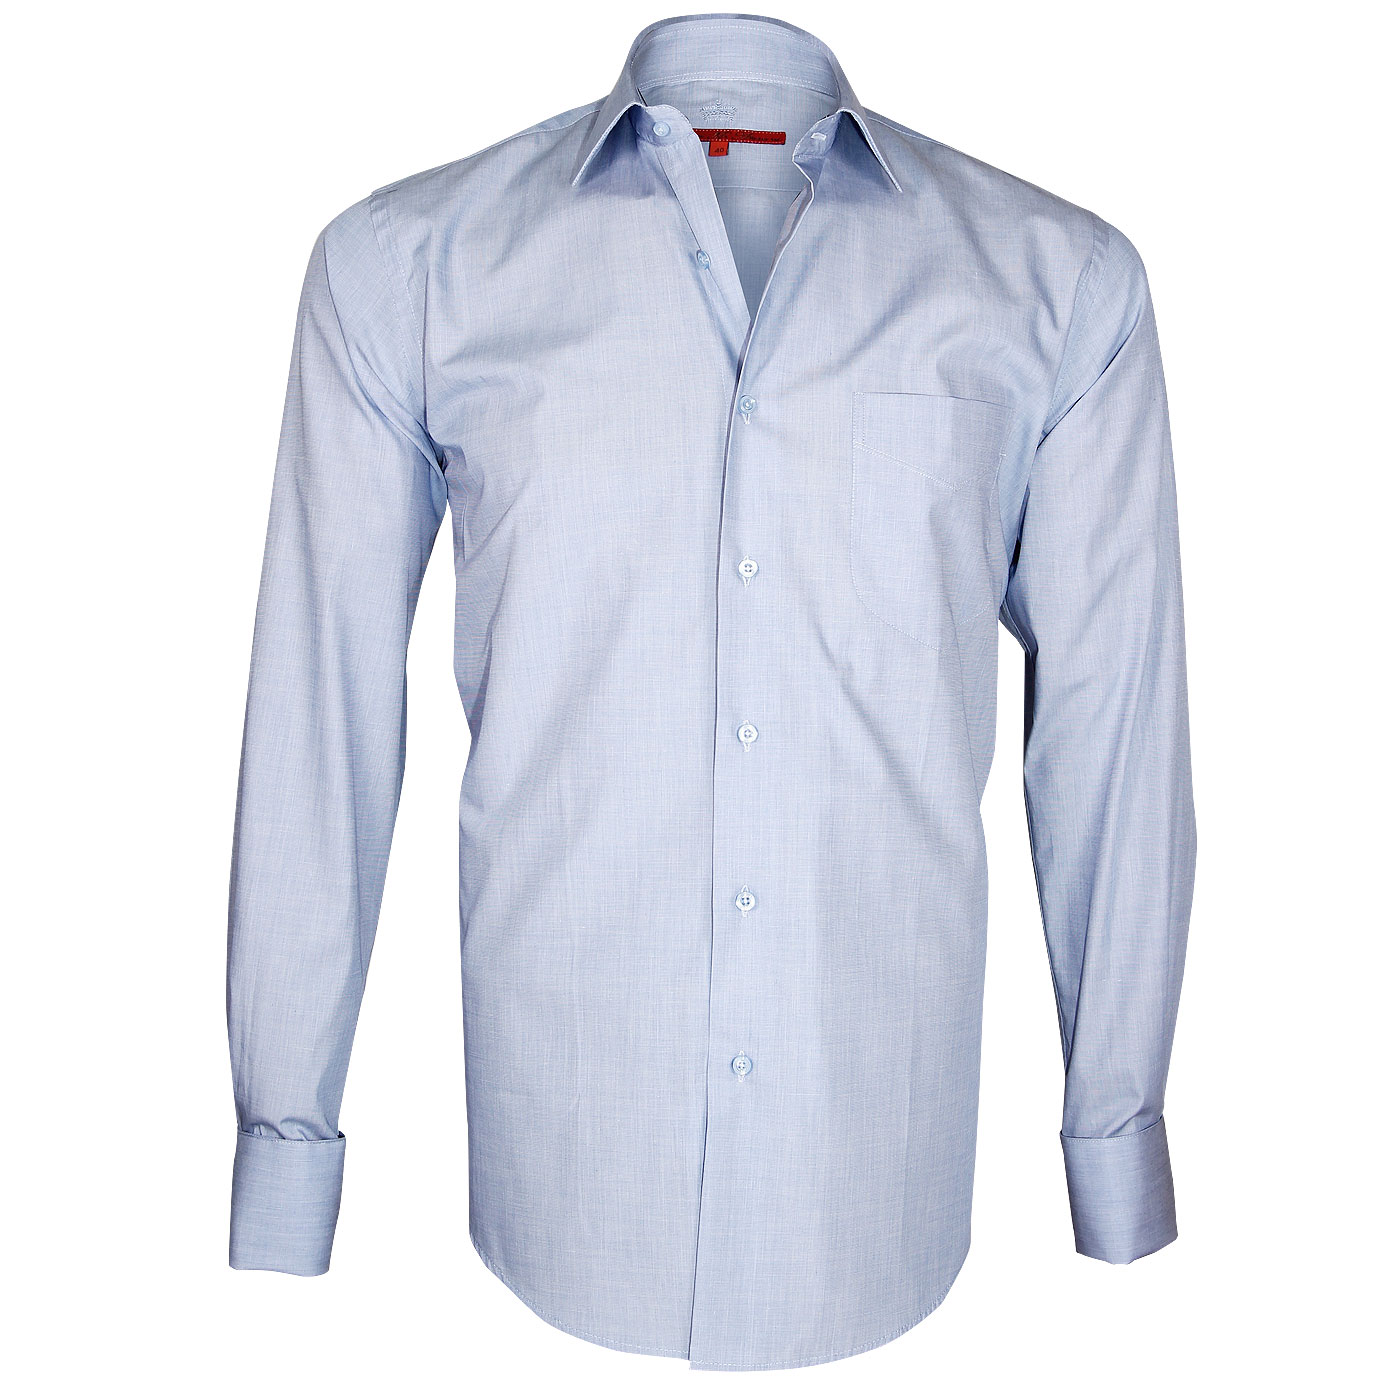 Dress shirt Business Collection  Shirt by webmenshirts